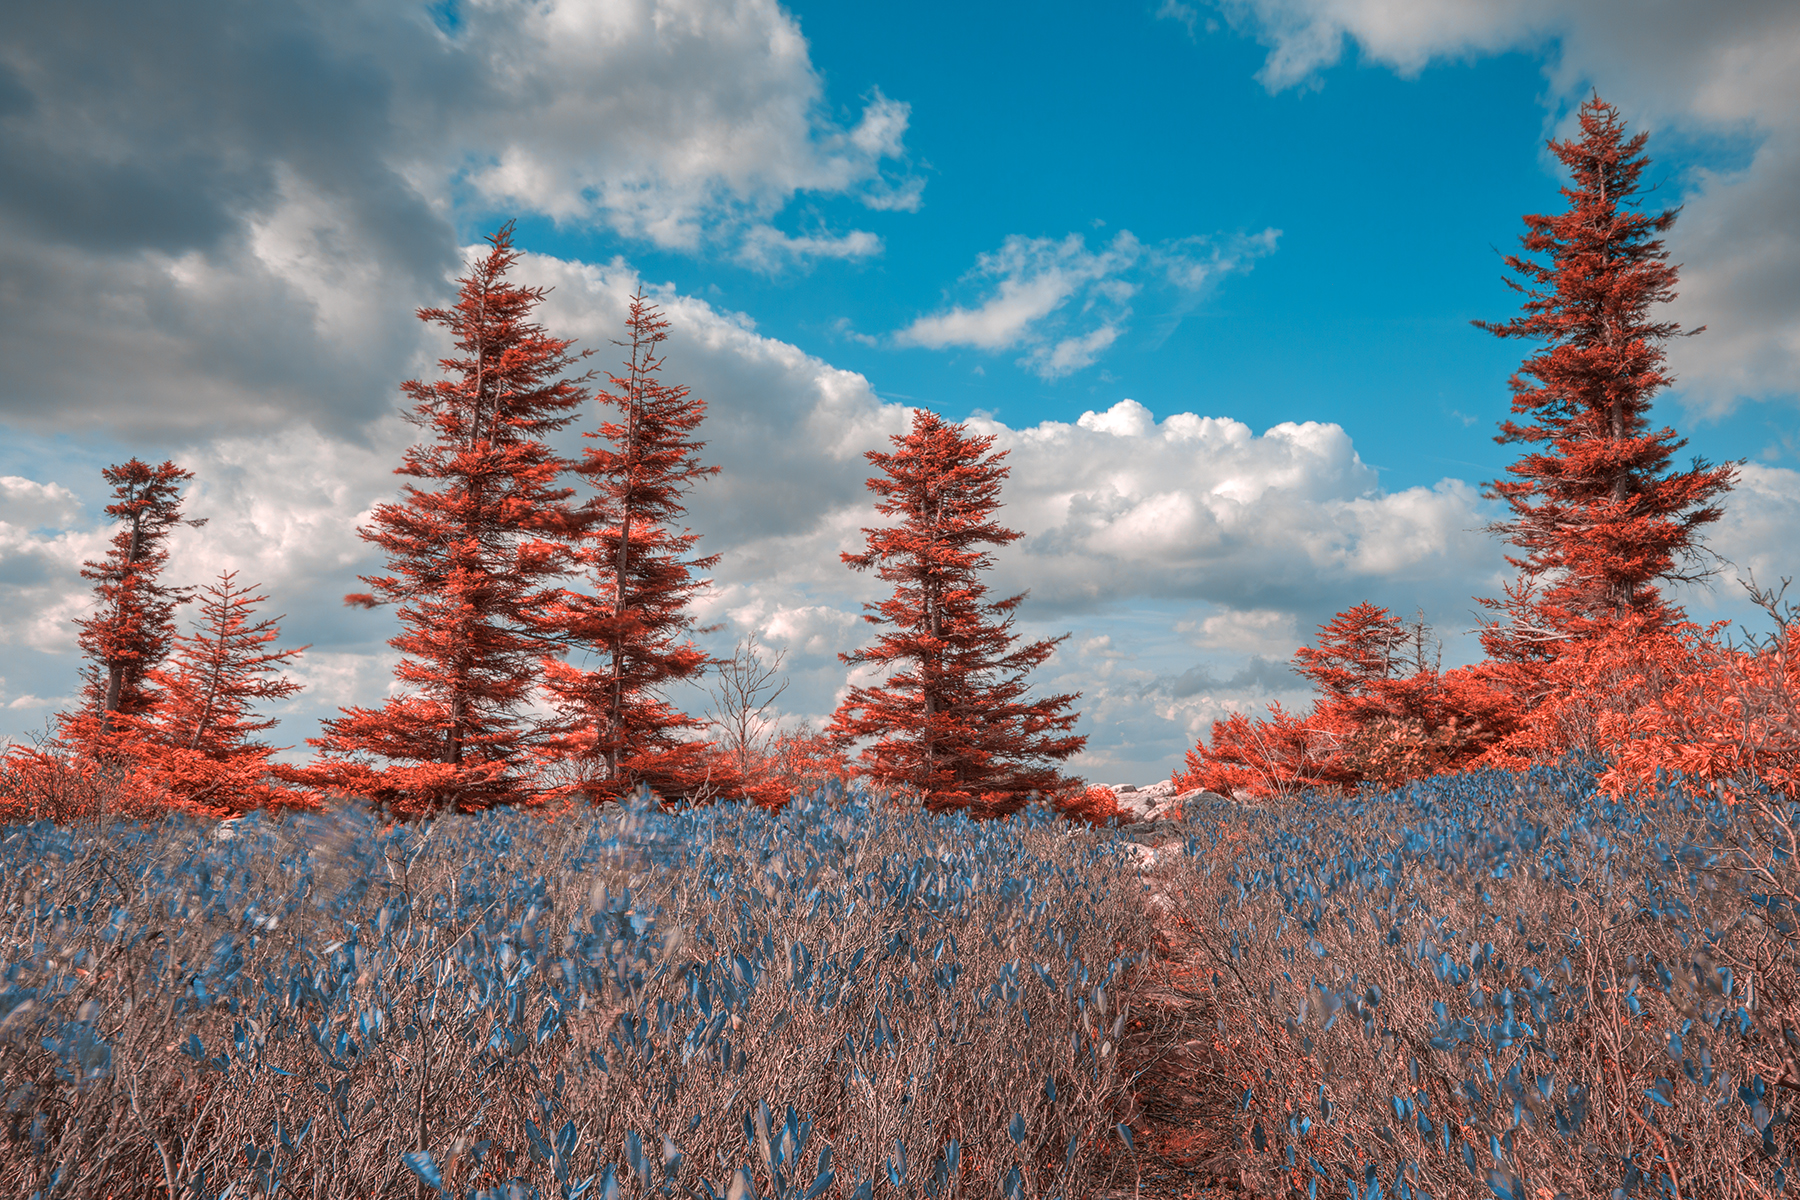 Dolly sods dreamland - hdr photo